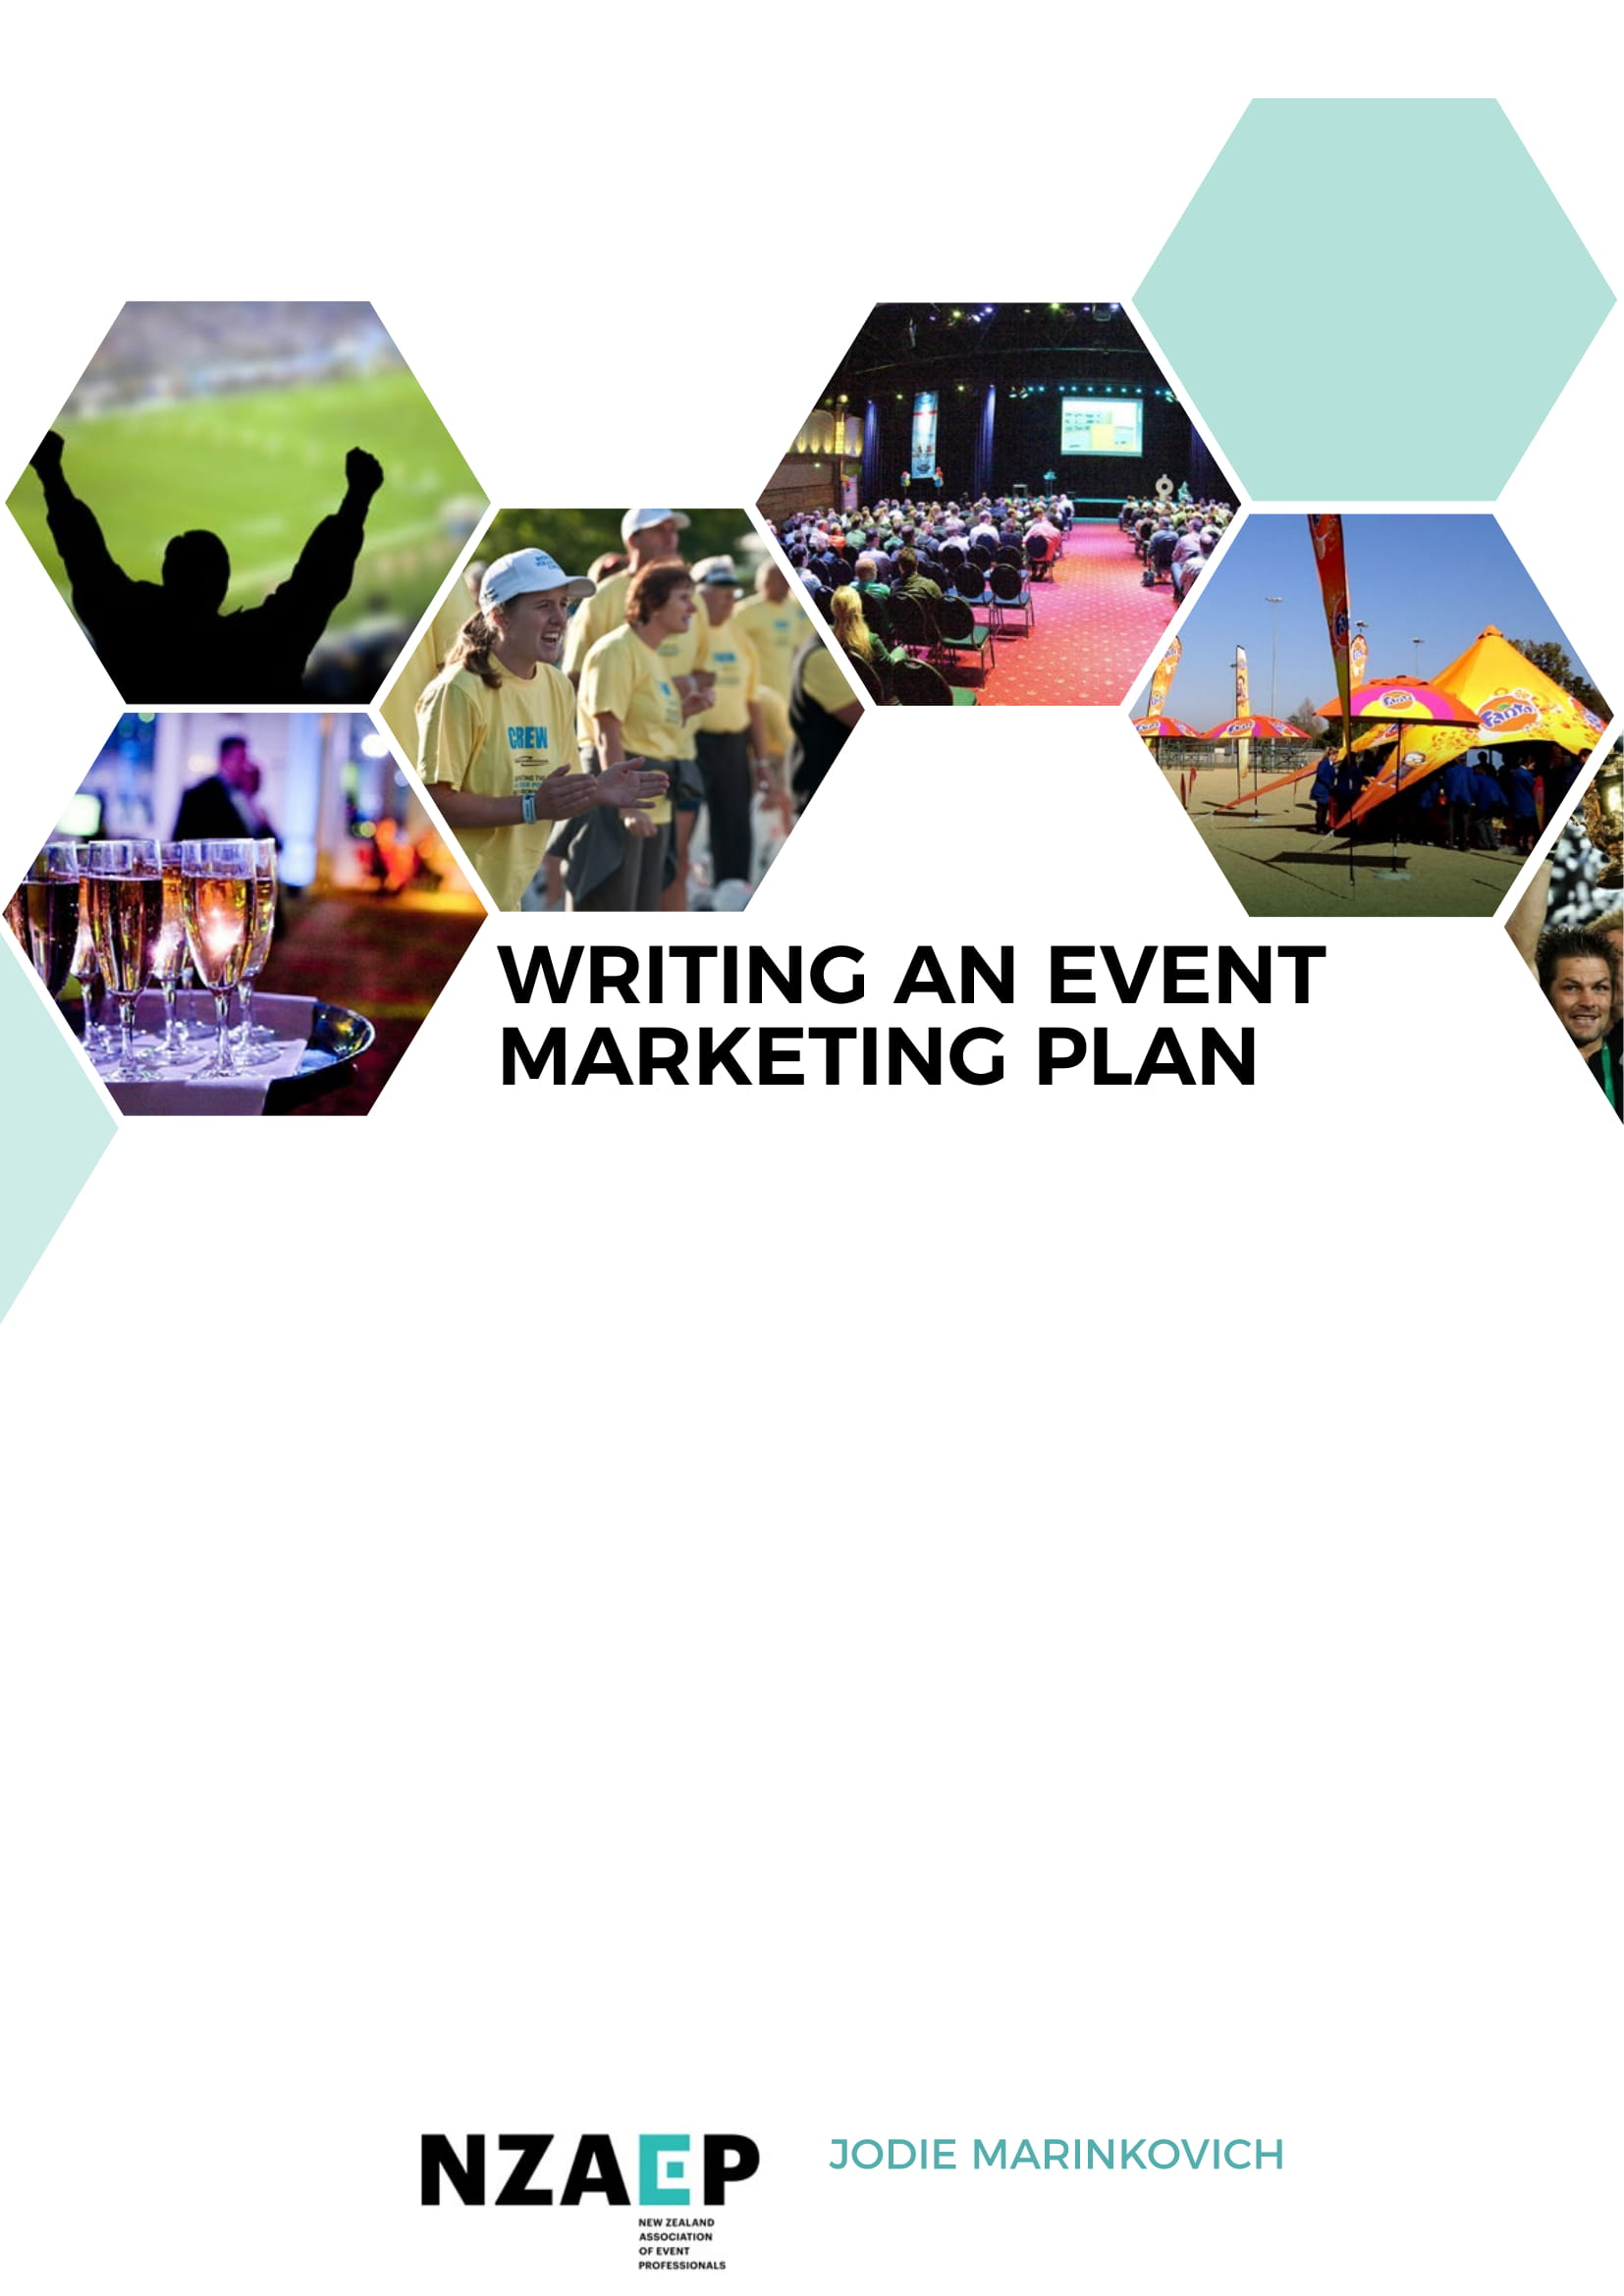 event marketing plan writing guide example 01